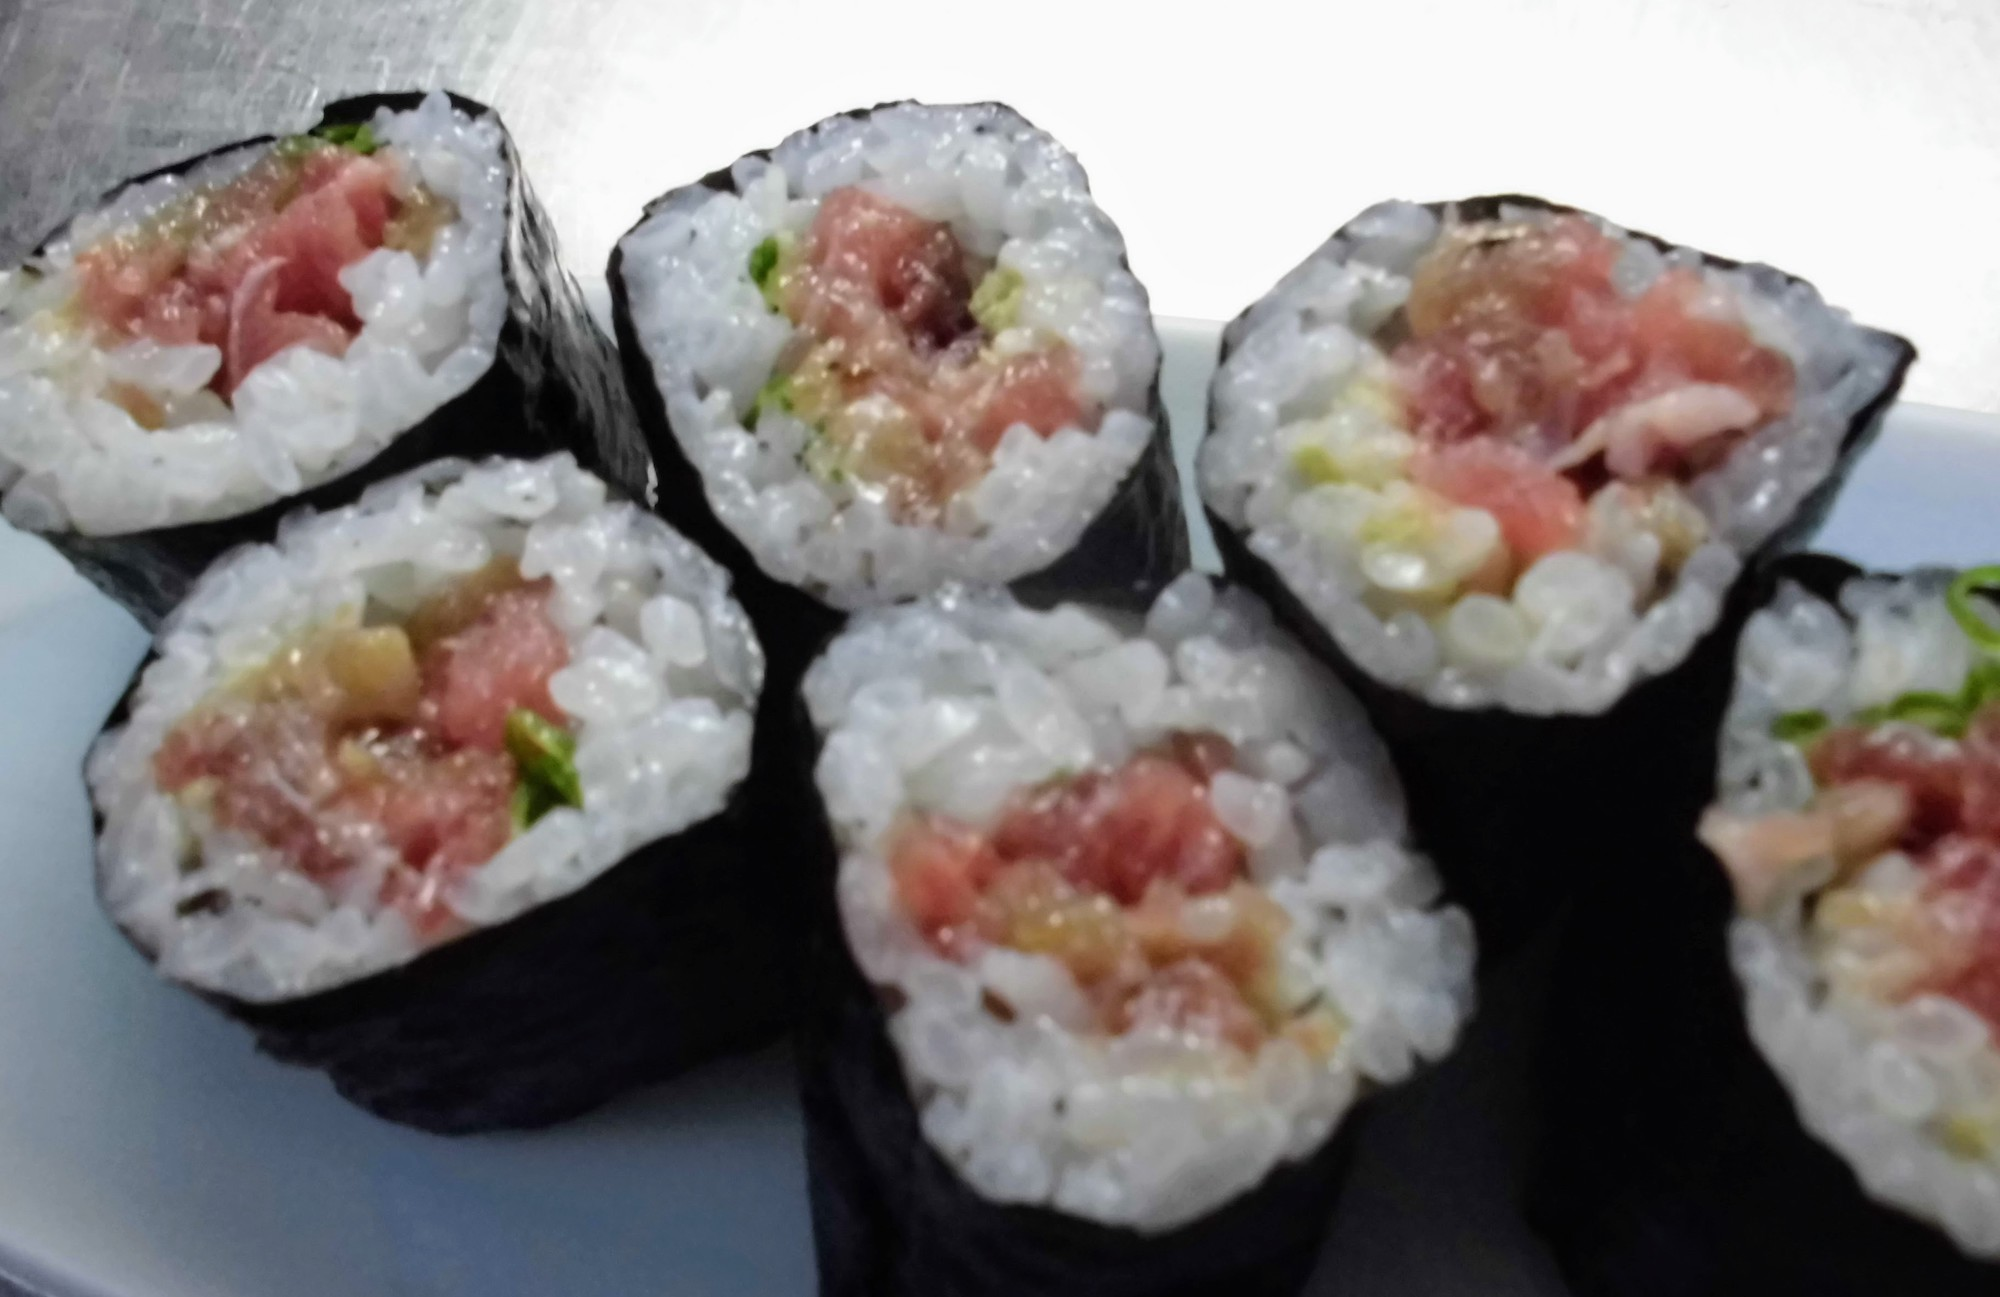 5. Tuna And Scallion Sushi Roll (Negitoro Maki)